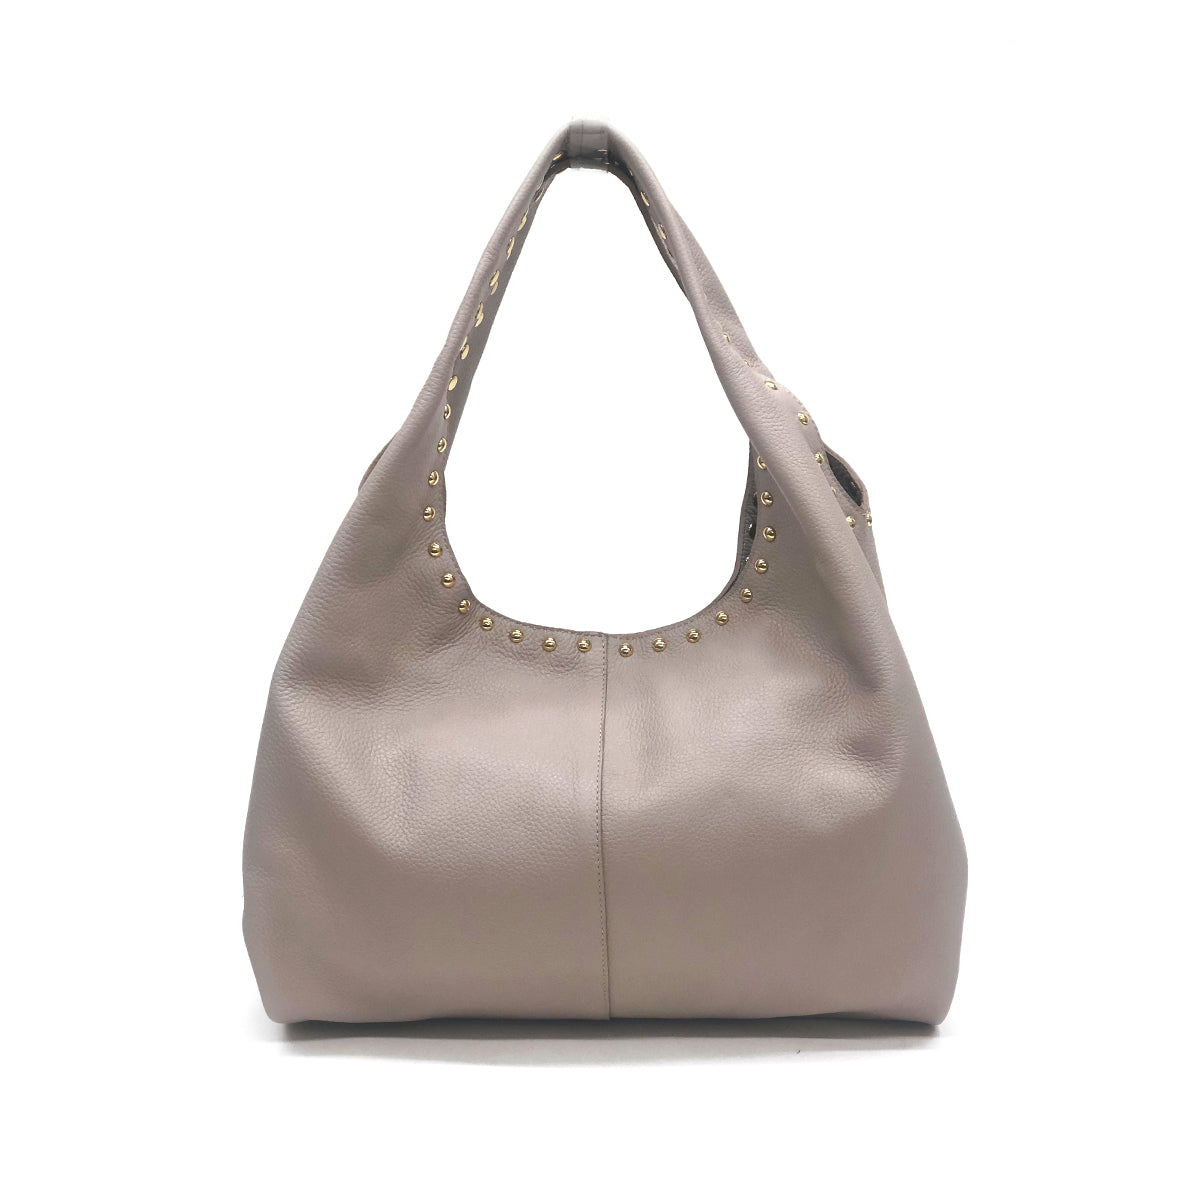 SIDNEY TOTE STUDDED